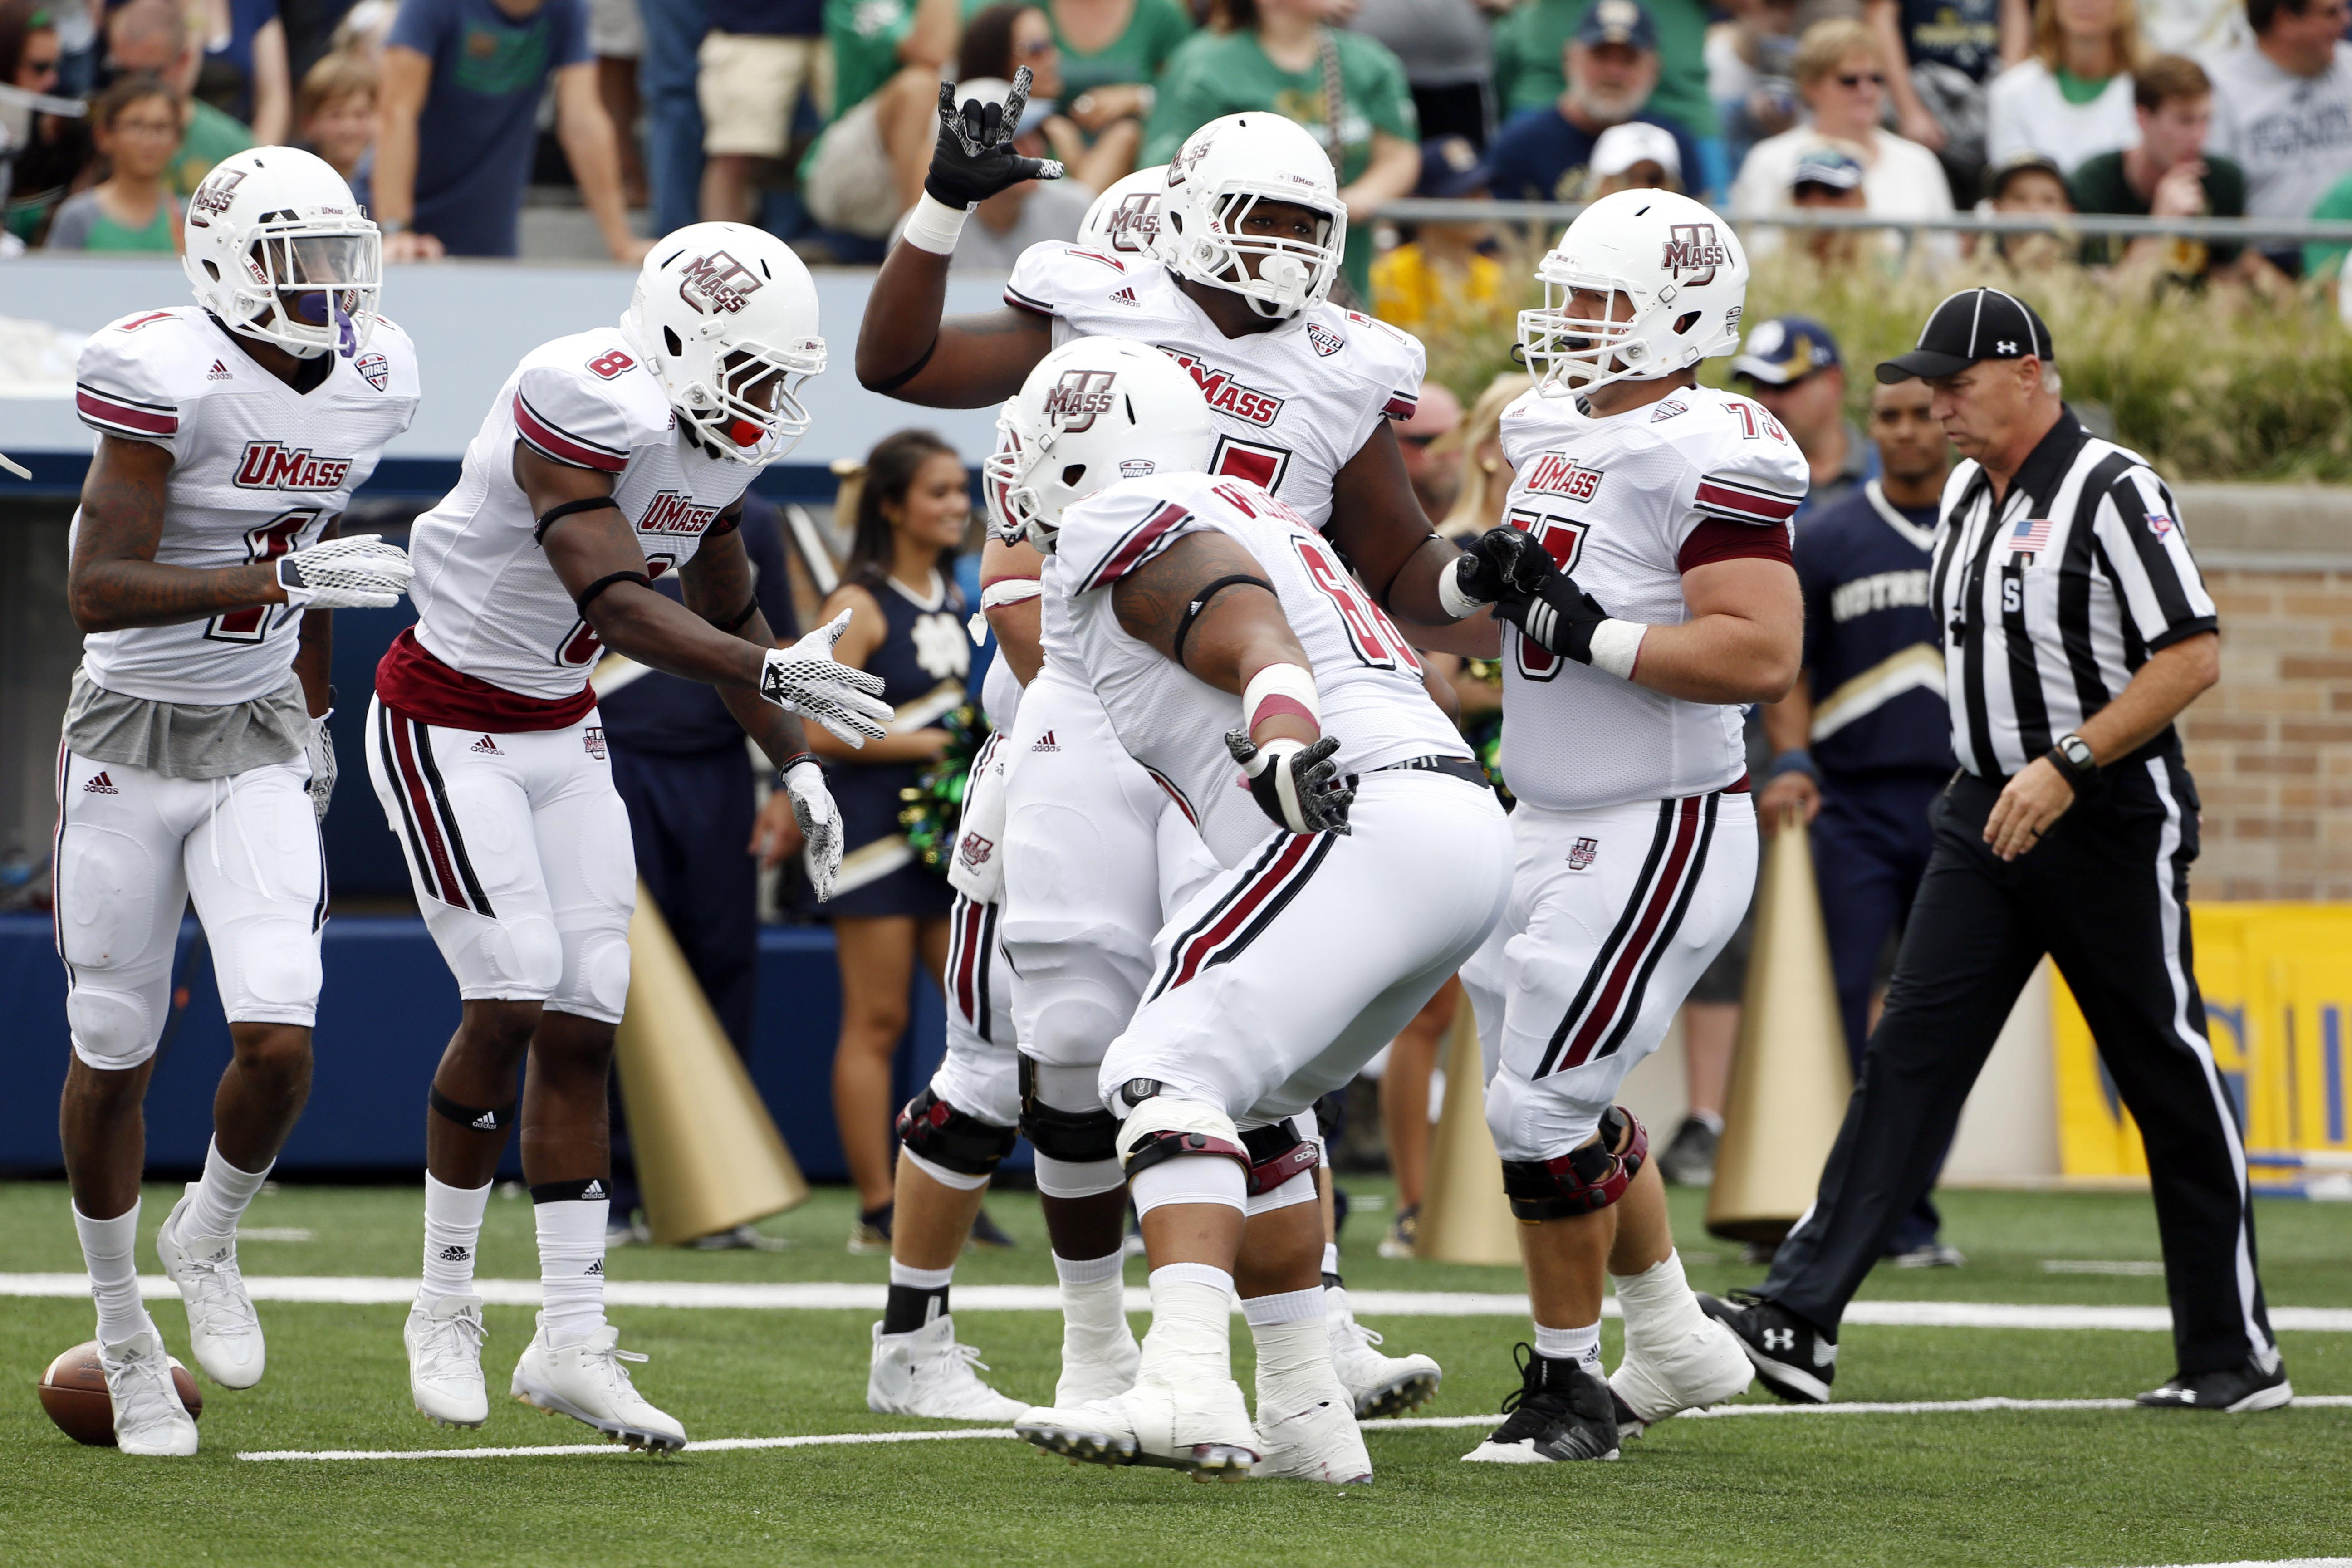 3b5b875cacd4 UMass is better-equipped than I thought to survive as a football ...